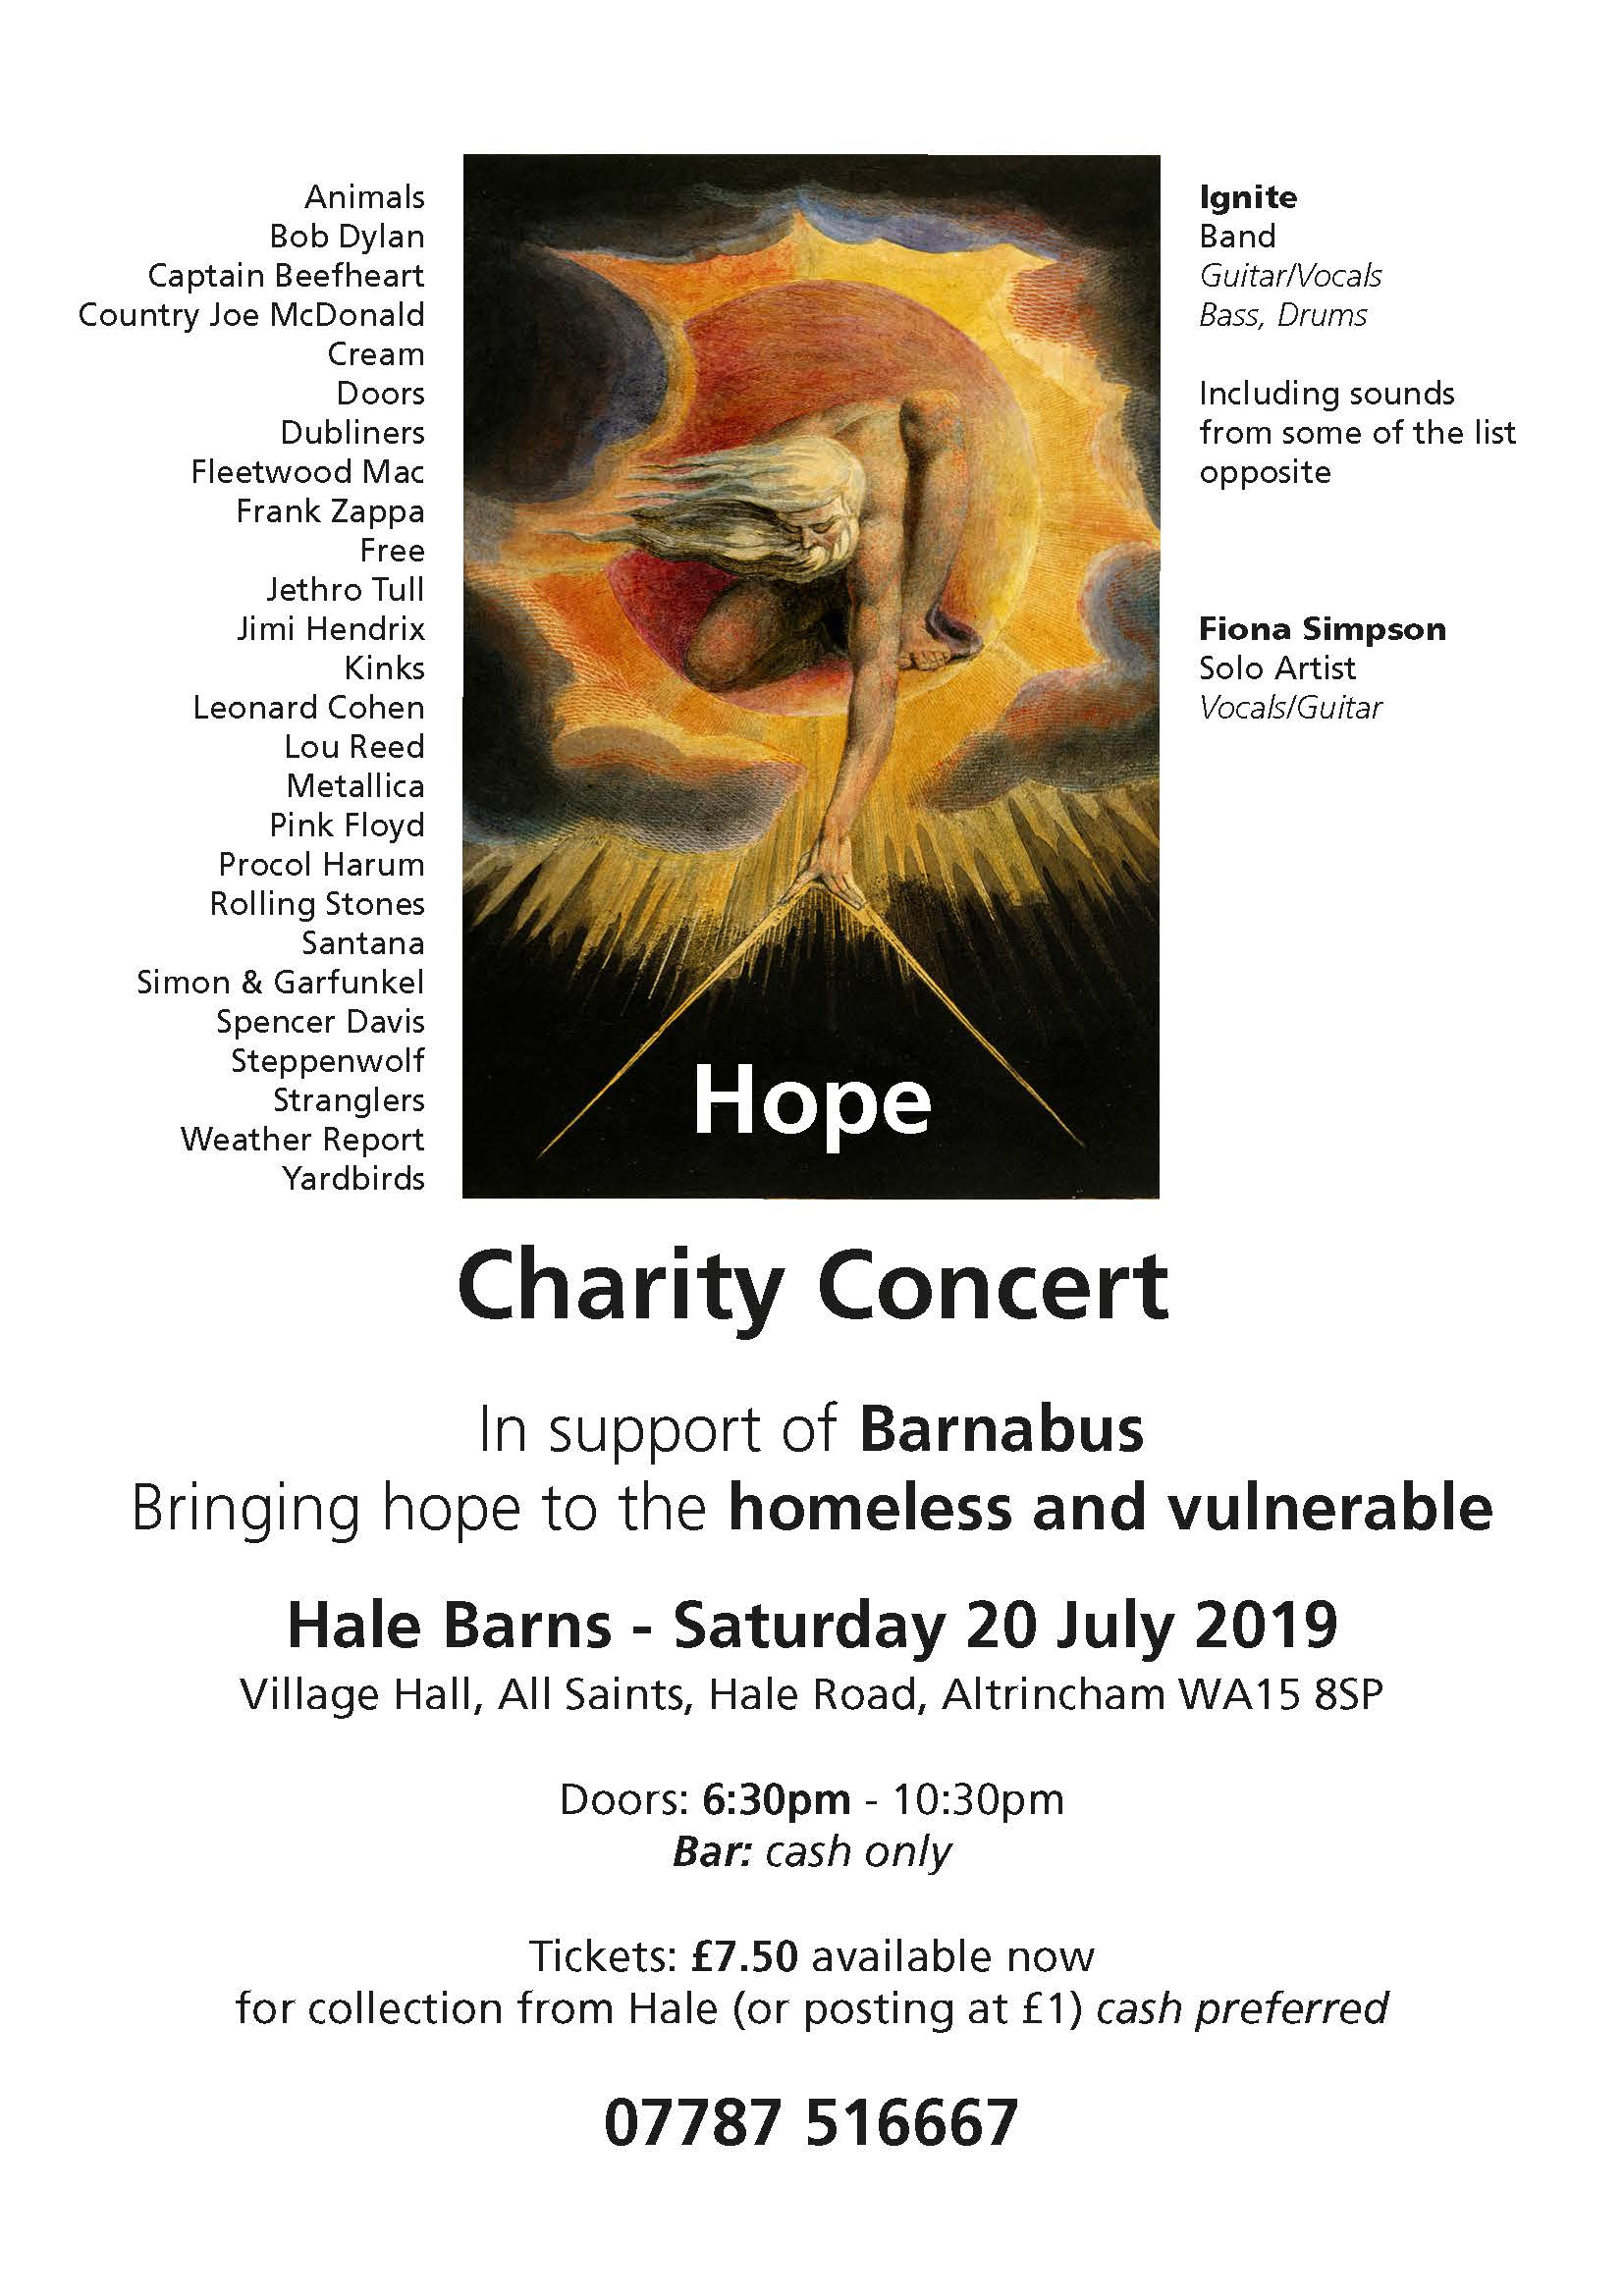 Charity Concert in support of the Homeless